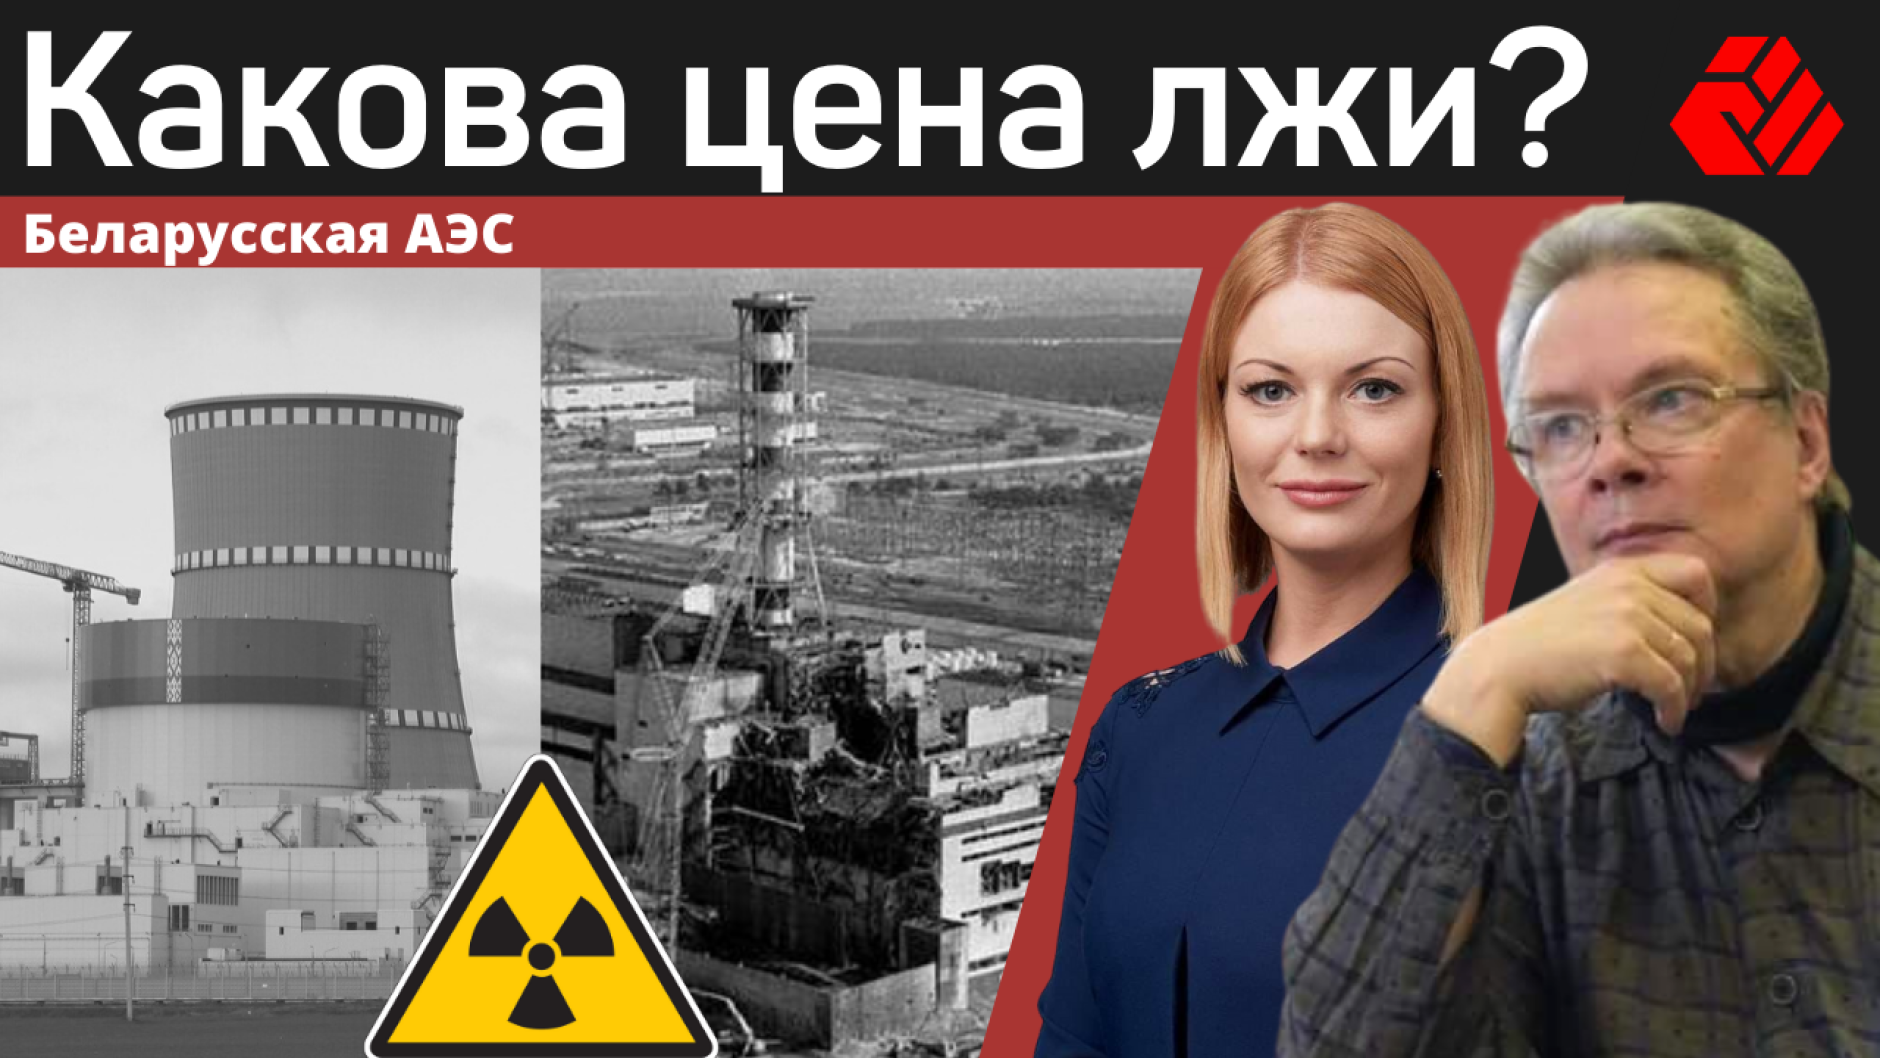 What is the price of a lie? Belarusian nuclear power plant